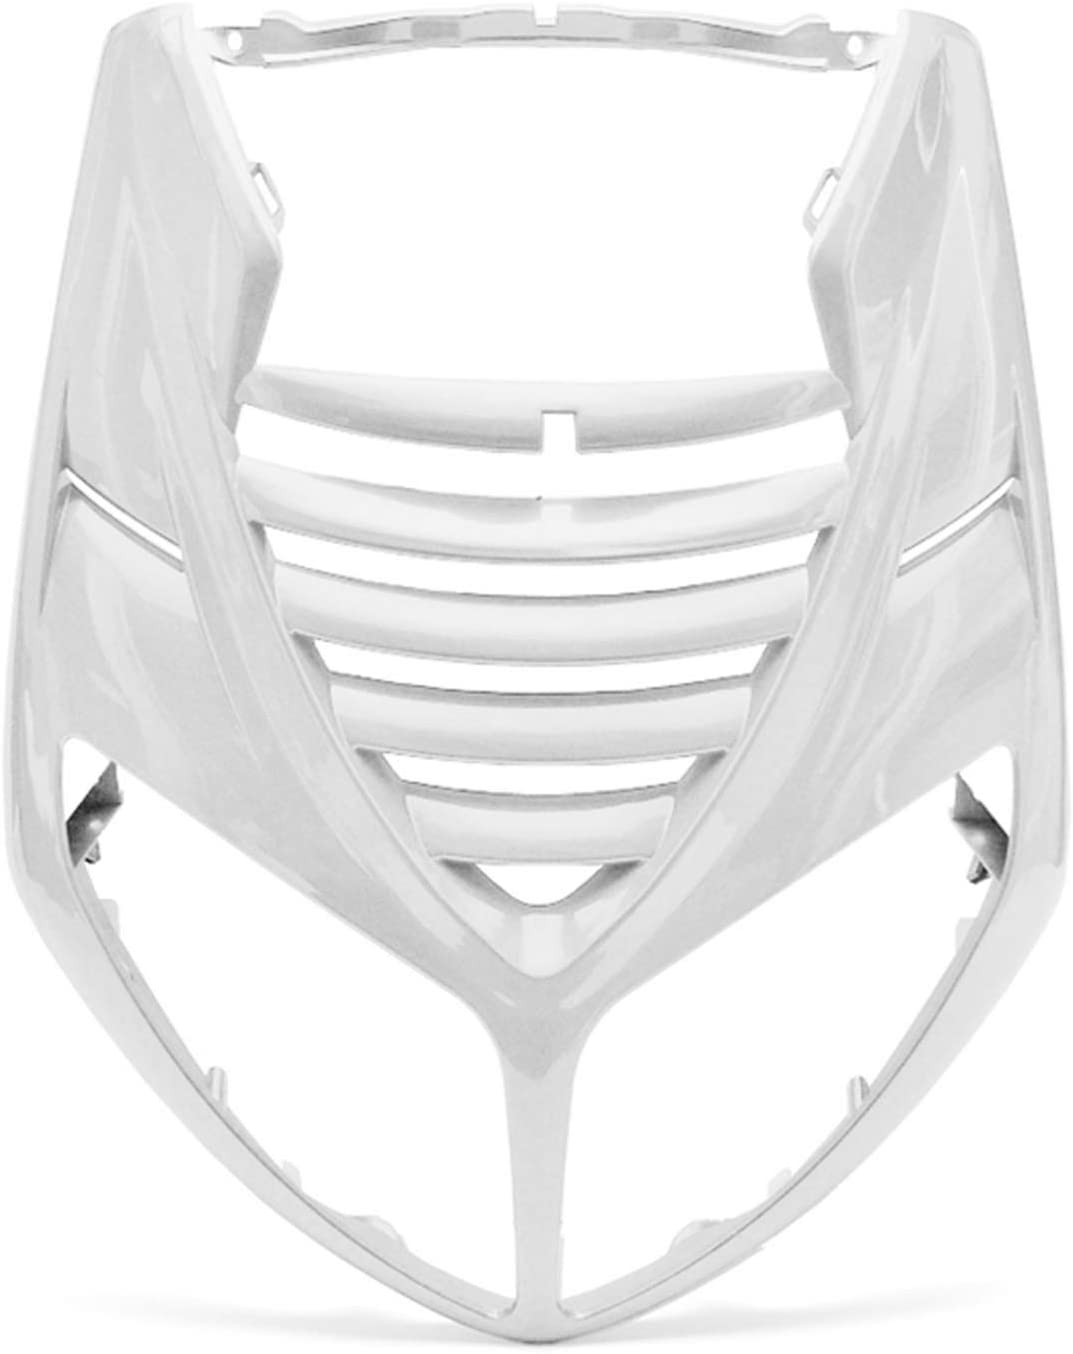 Front Cowling TNT top for PEUGEOT Speedfight II White